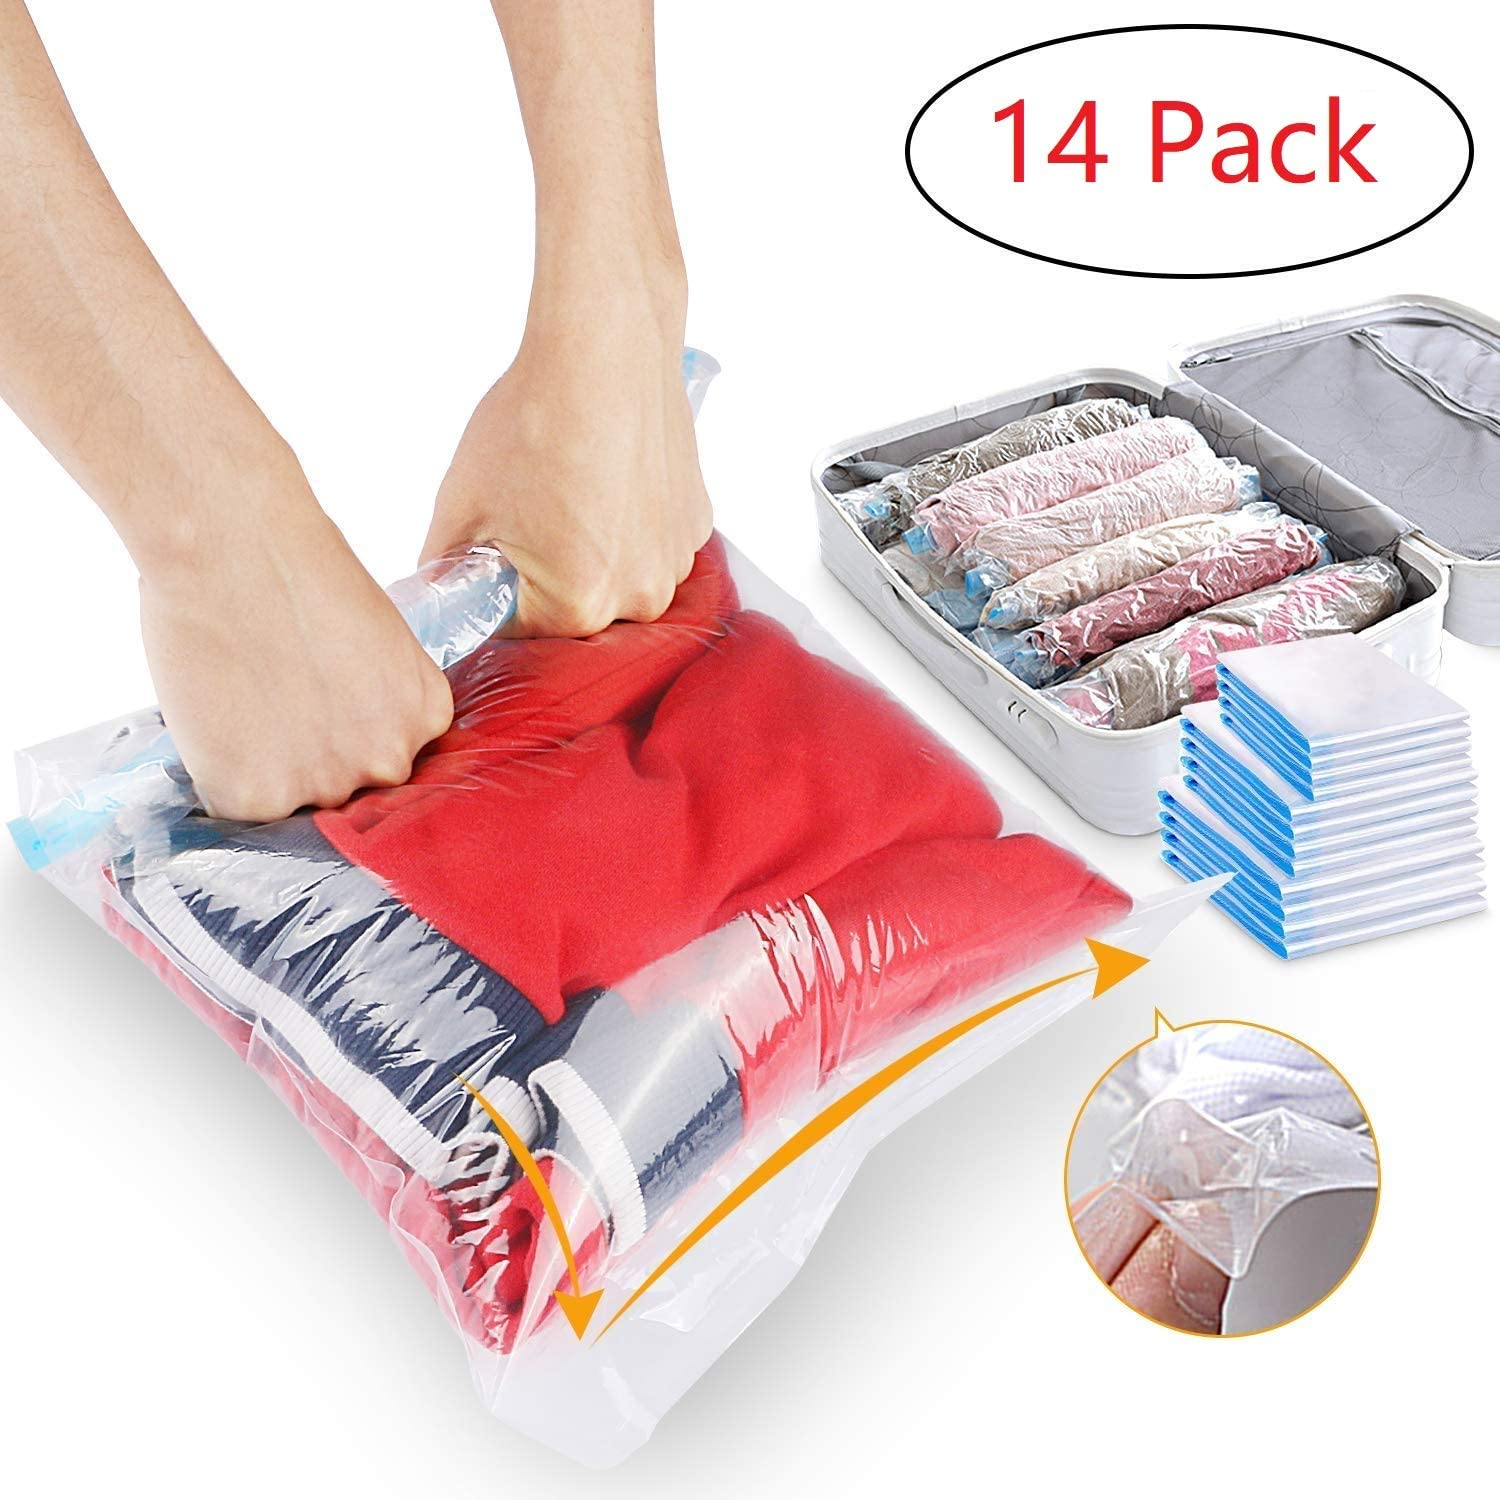 Houson 14 Pack Travel Storage Bags, No Vacuum or Pump Needed Travel Compression Bags Roll Up Storage Bags for Clothes, Luggage